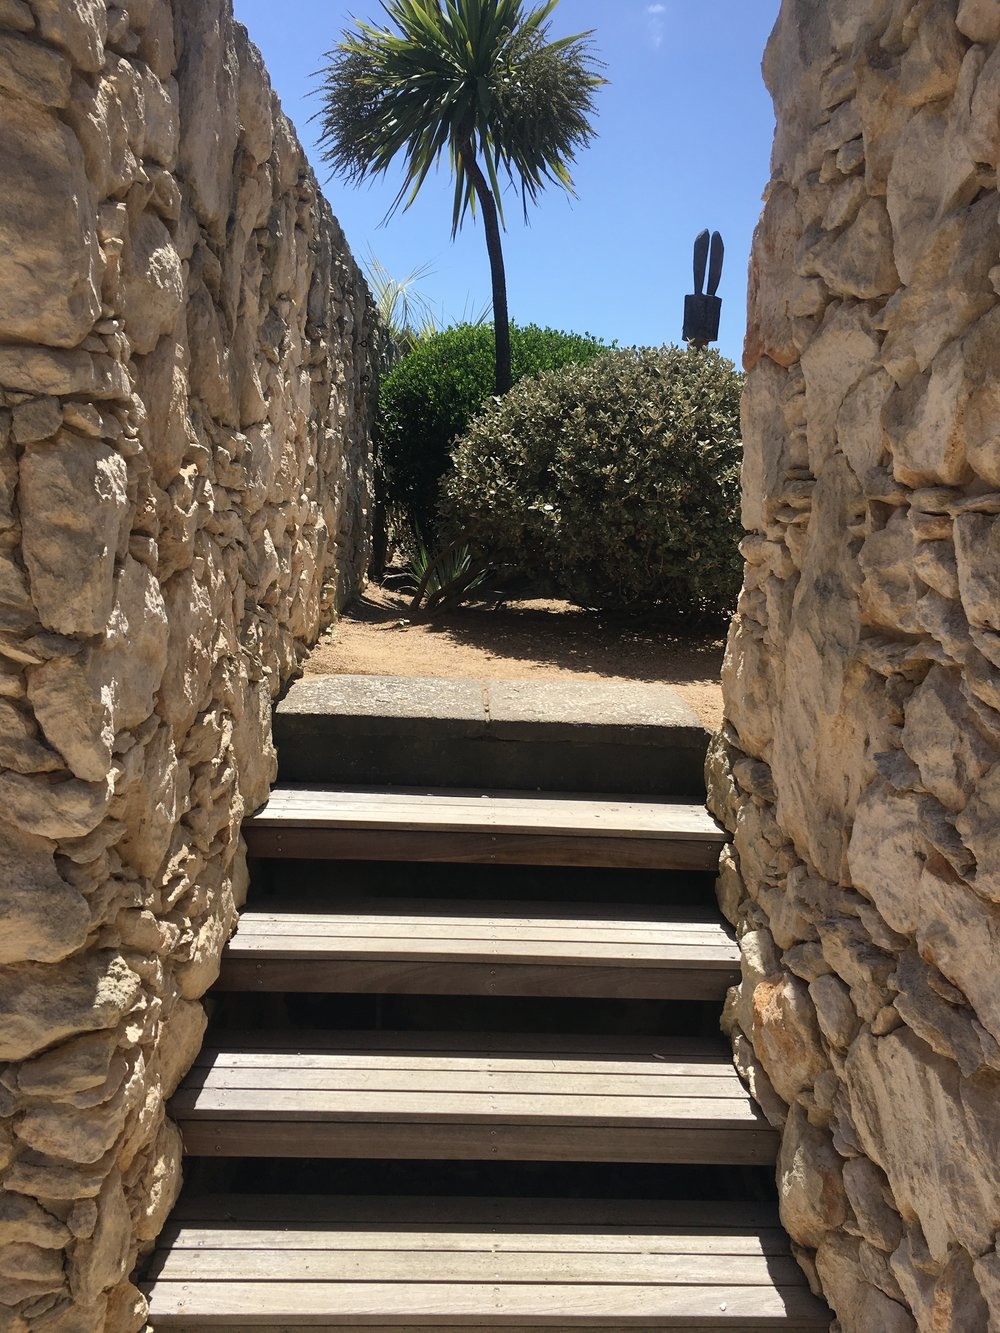 Narrow steps open to ocean views